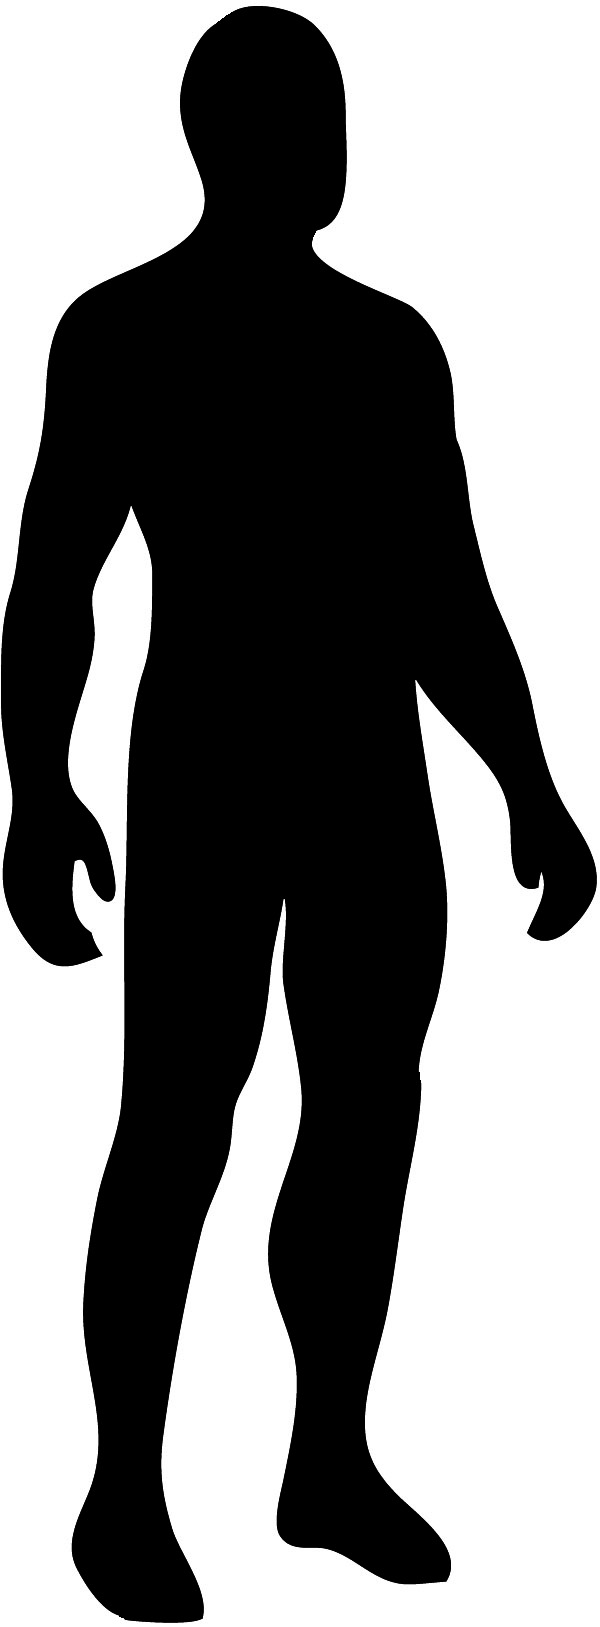 Humans clipart human shadow. Free cliparts download clip